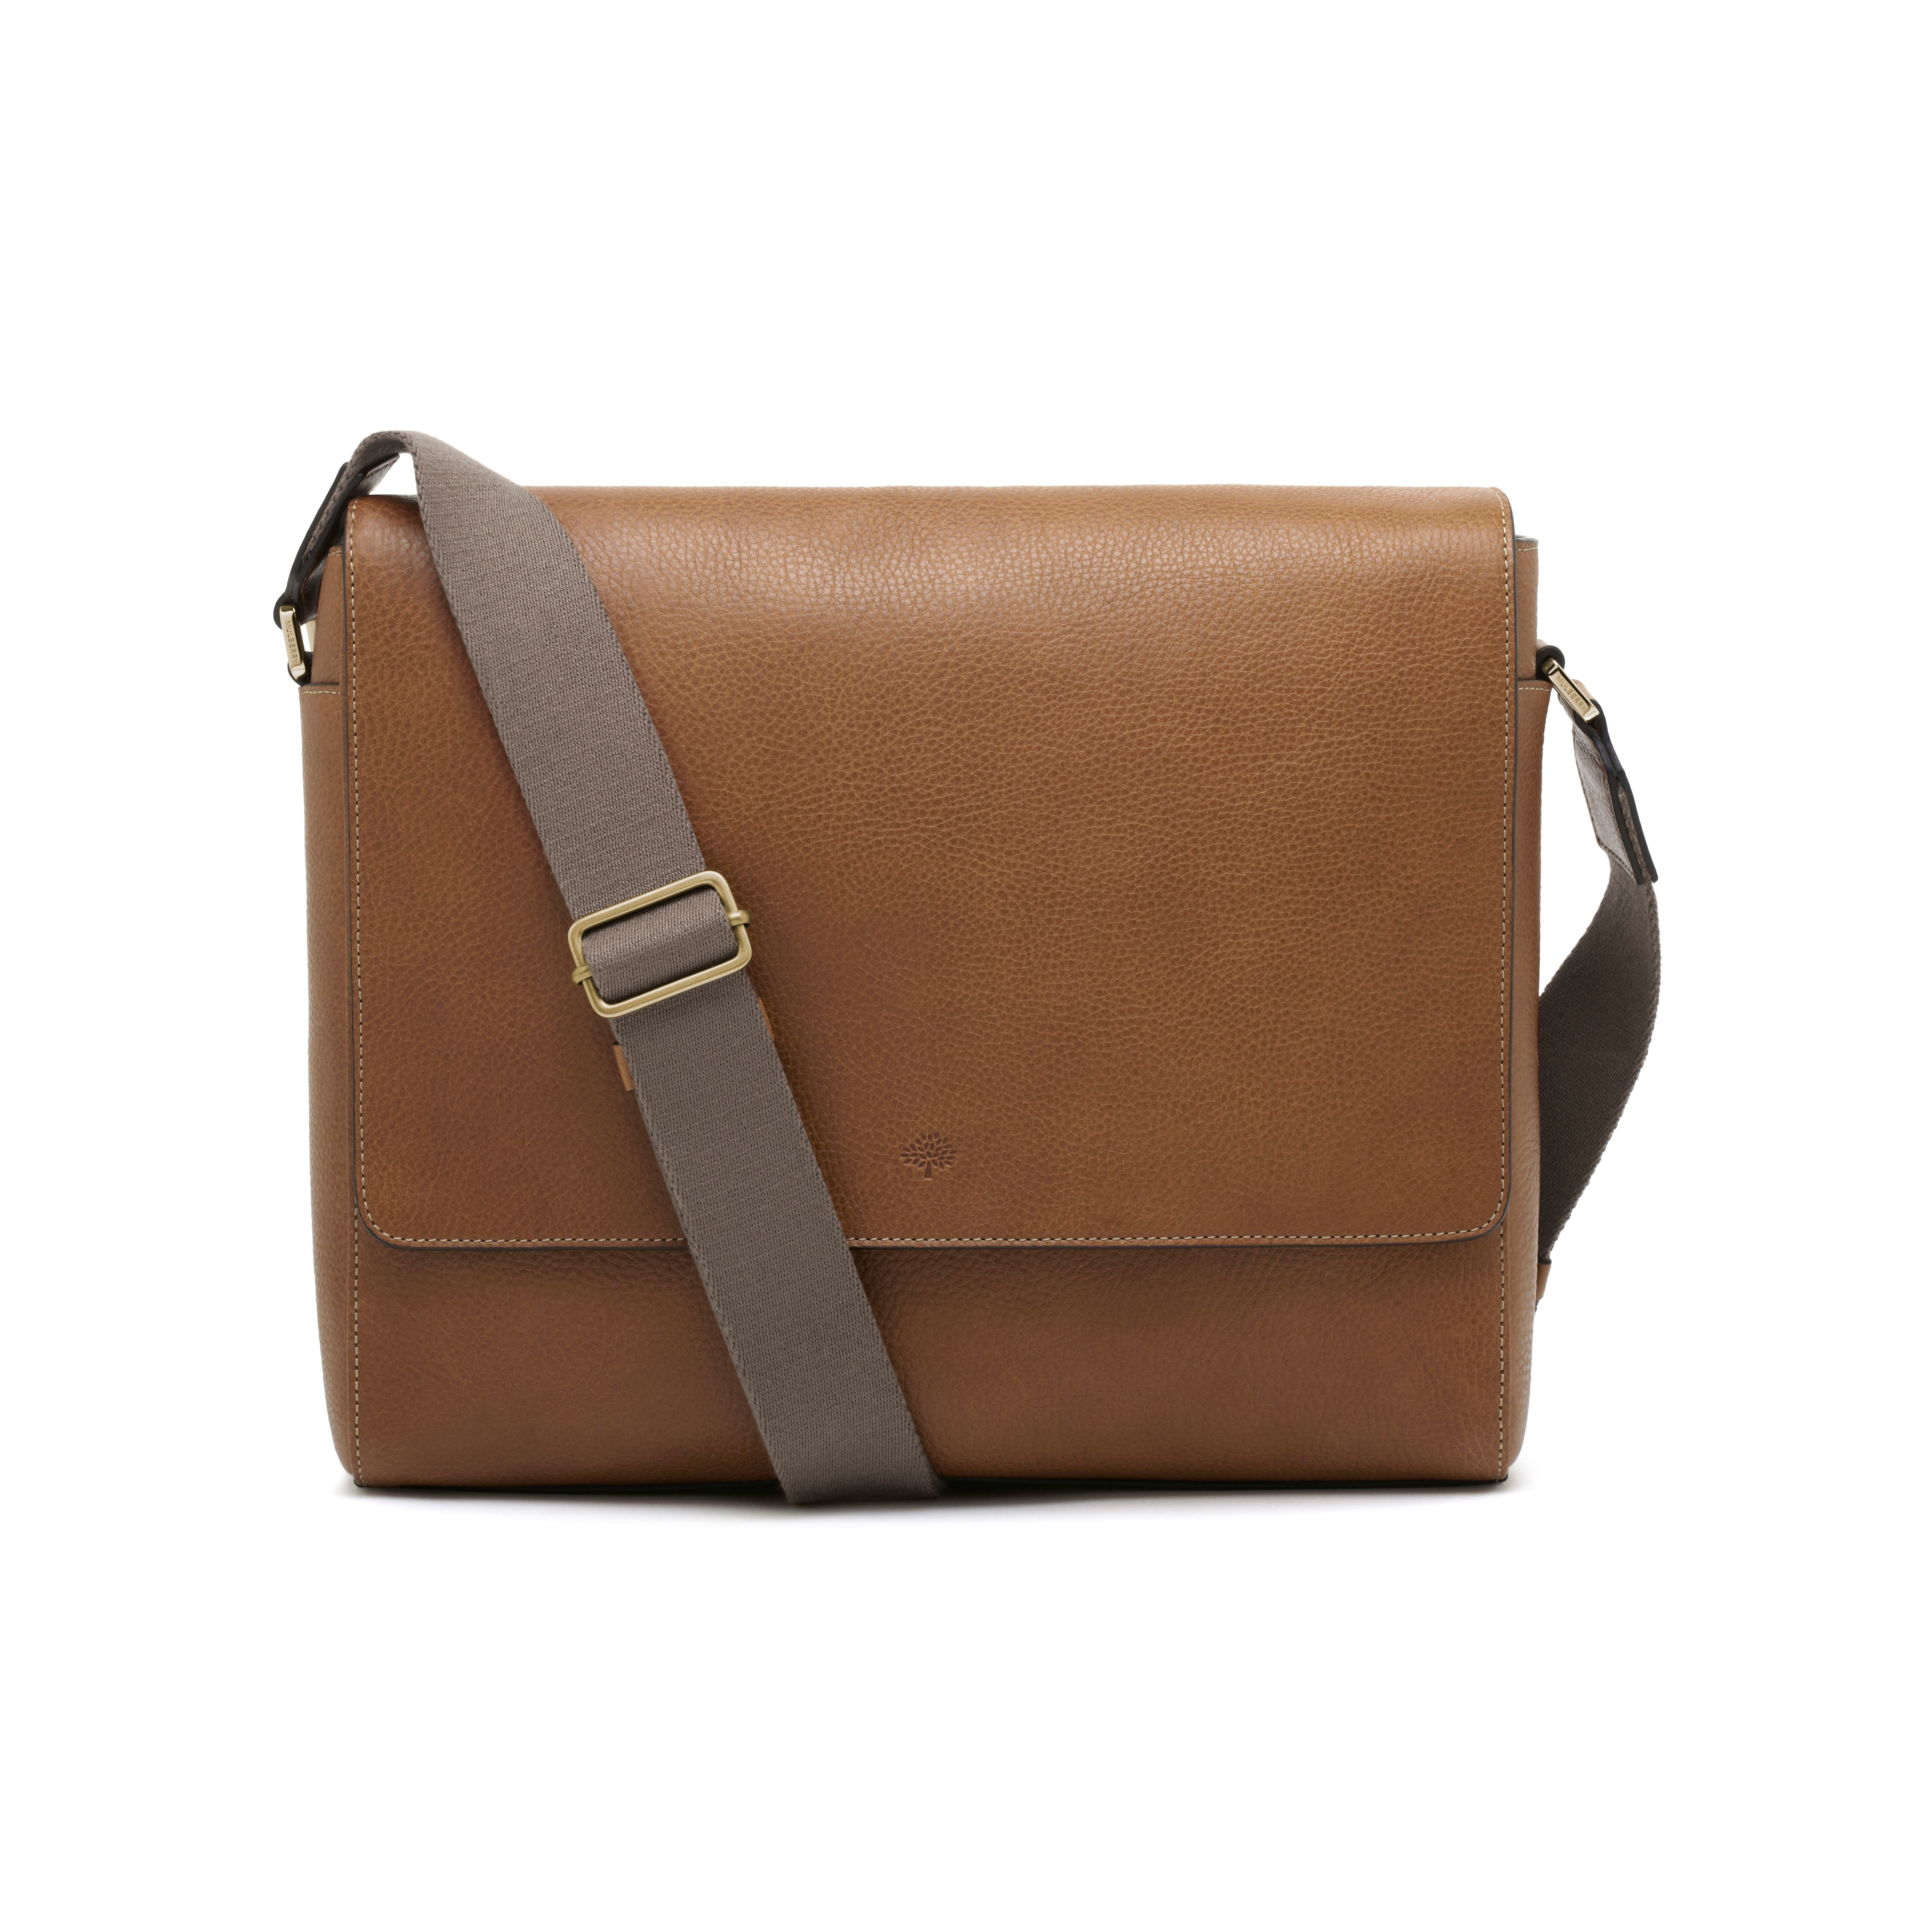 c0eb0b9a12 ... greece lyst mulberry maxwell messenger in brown for men 16c2b 00569